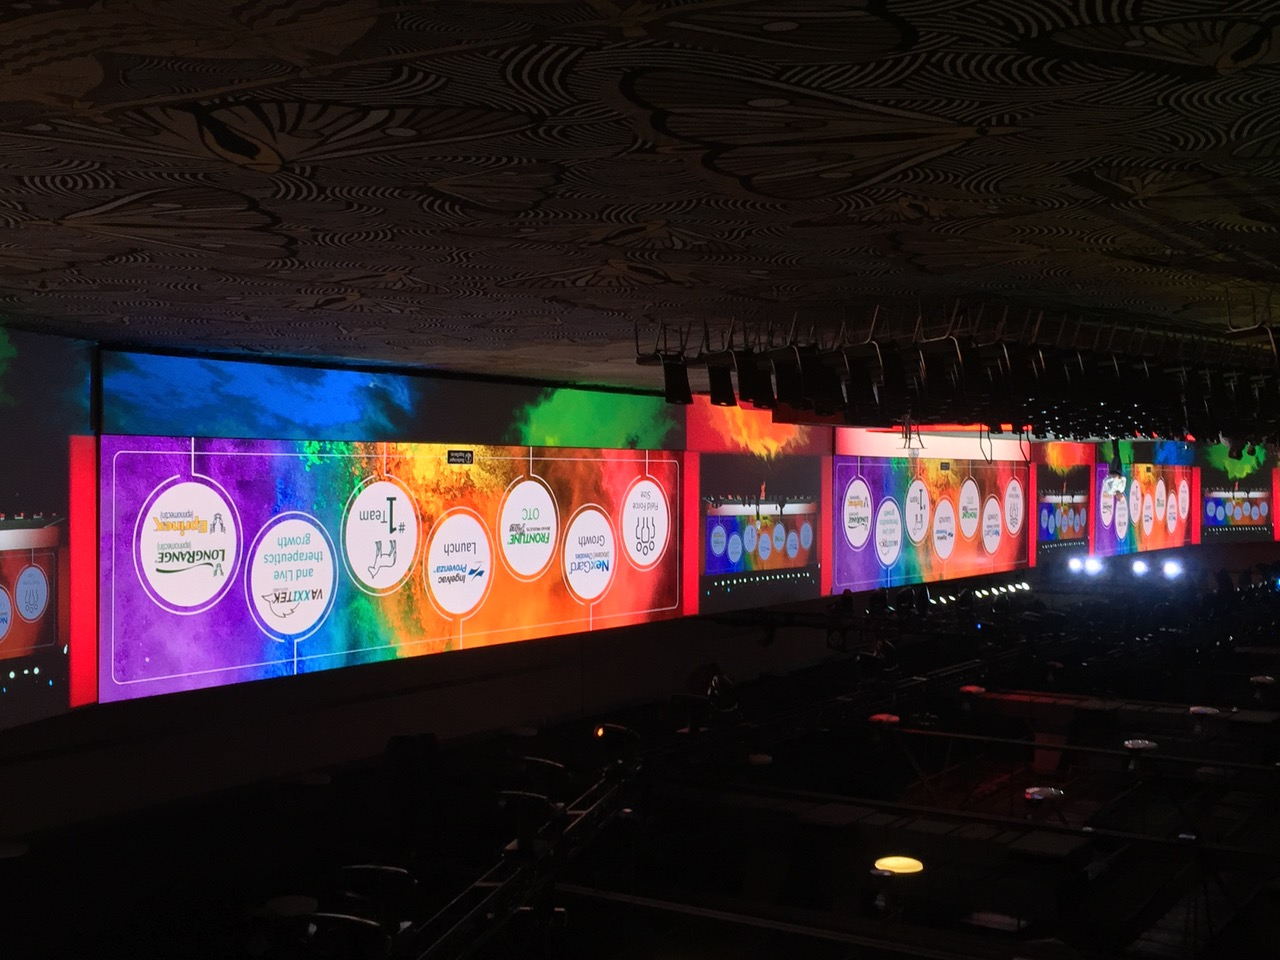 3) 50' x 12' 3.9mm LED Walls with Projection Surround